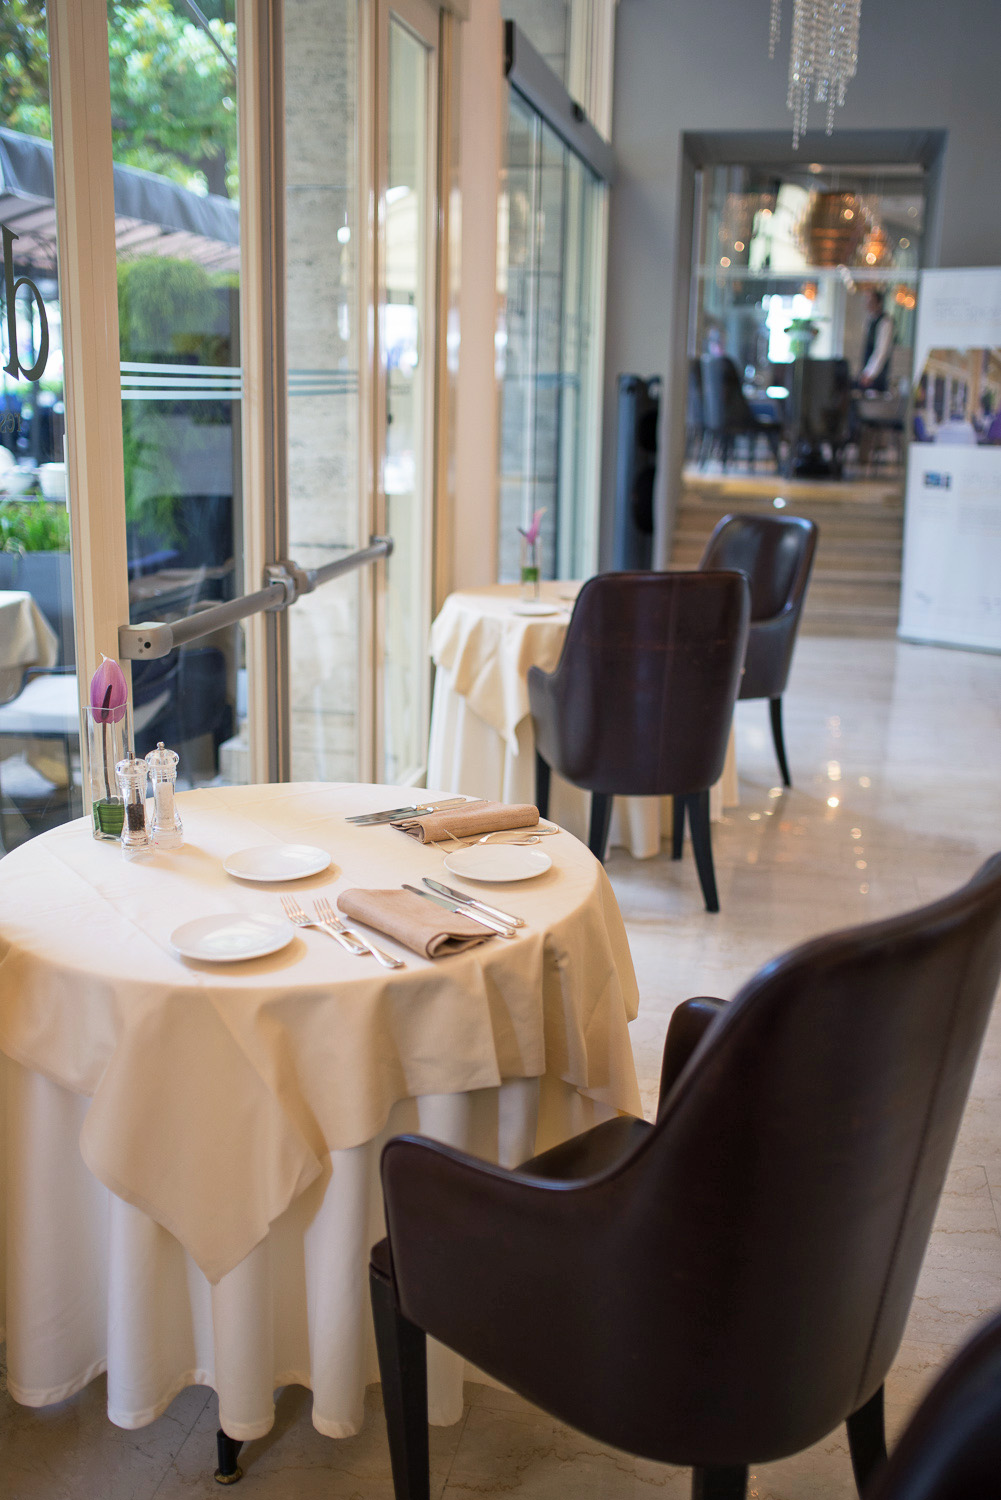 Westin-Excelsior-Hotel-Rome-Breakfast-3